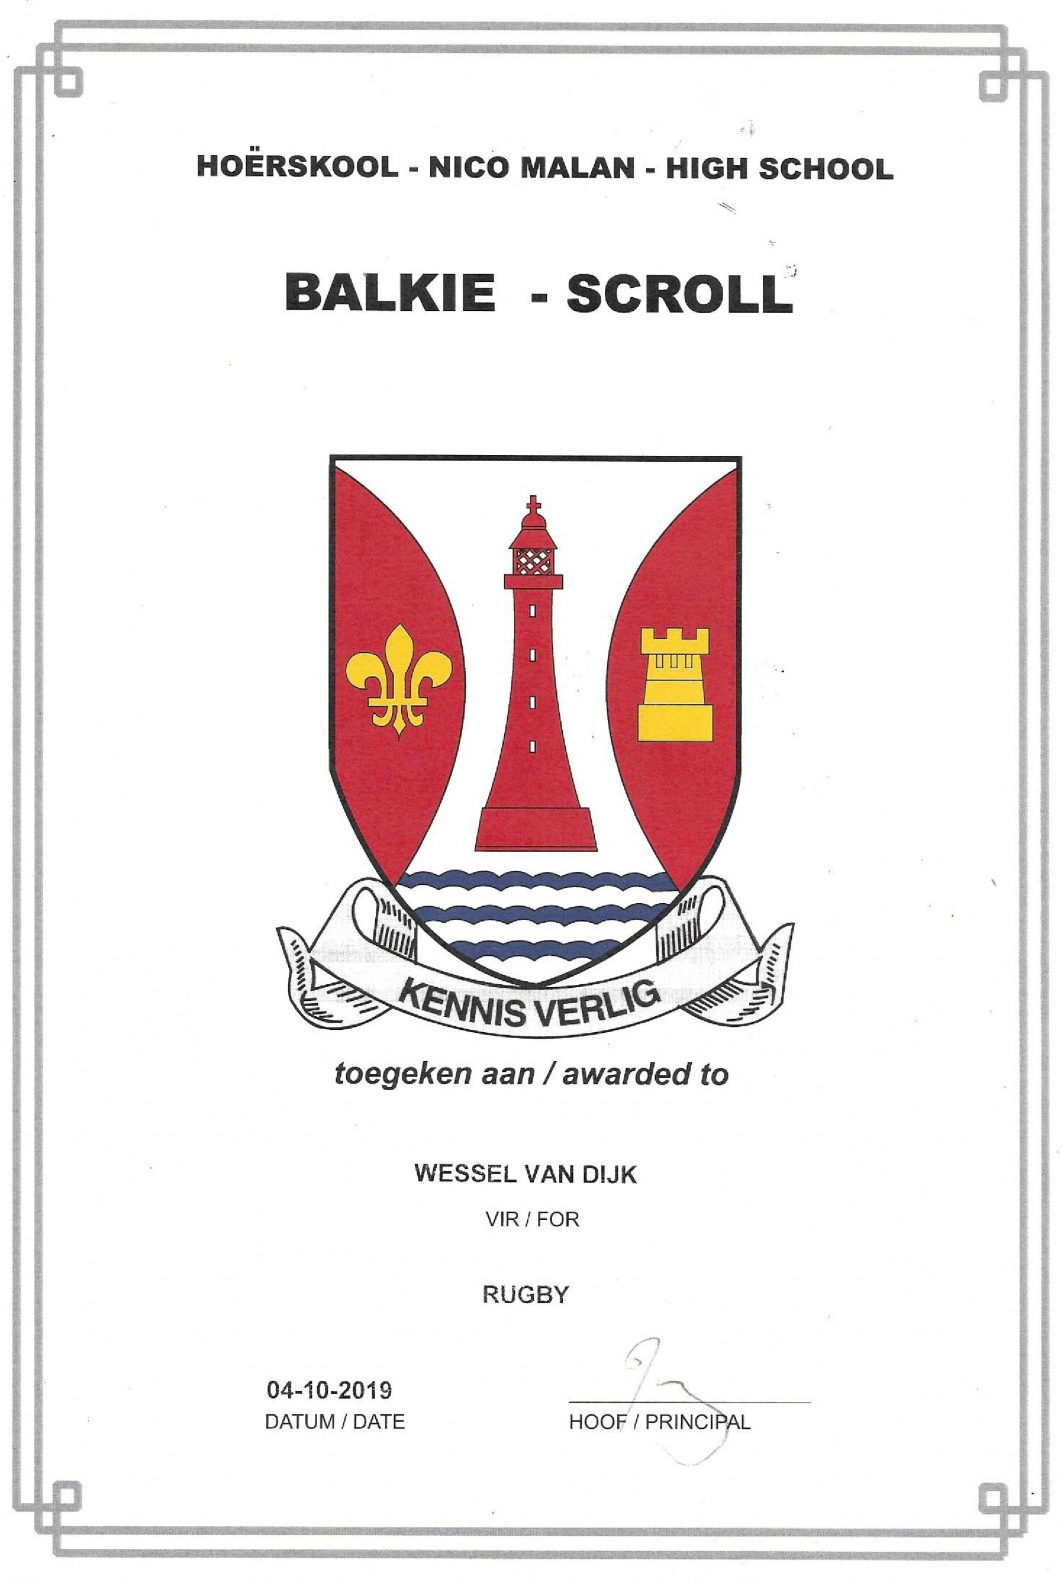 Wessel received this scroll for his rugby in high school